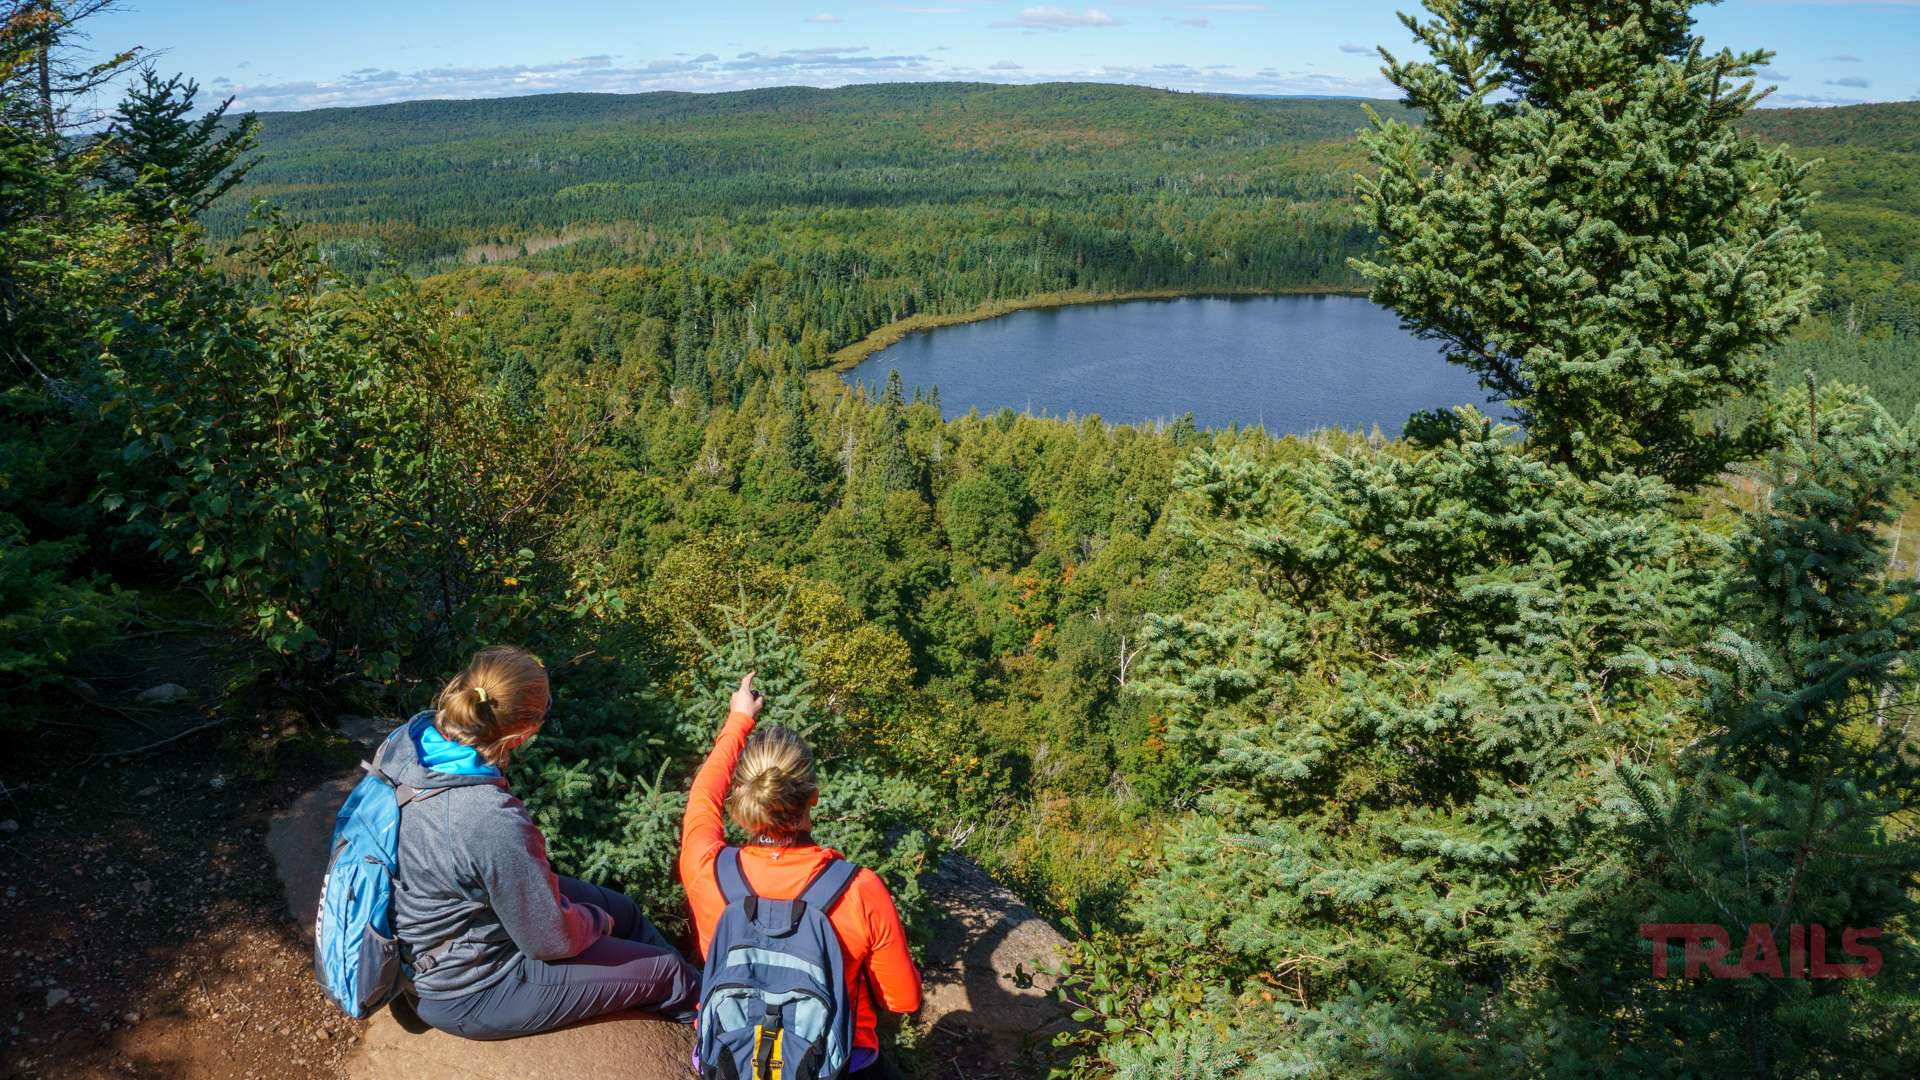 Two female hikers enjoy a scenic view at the top of the Oberg Loop on the Superior Hiking Trail in Minnesota